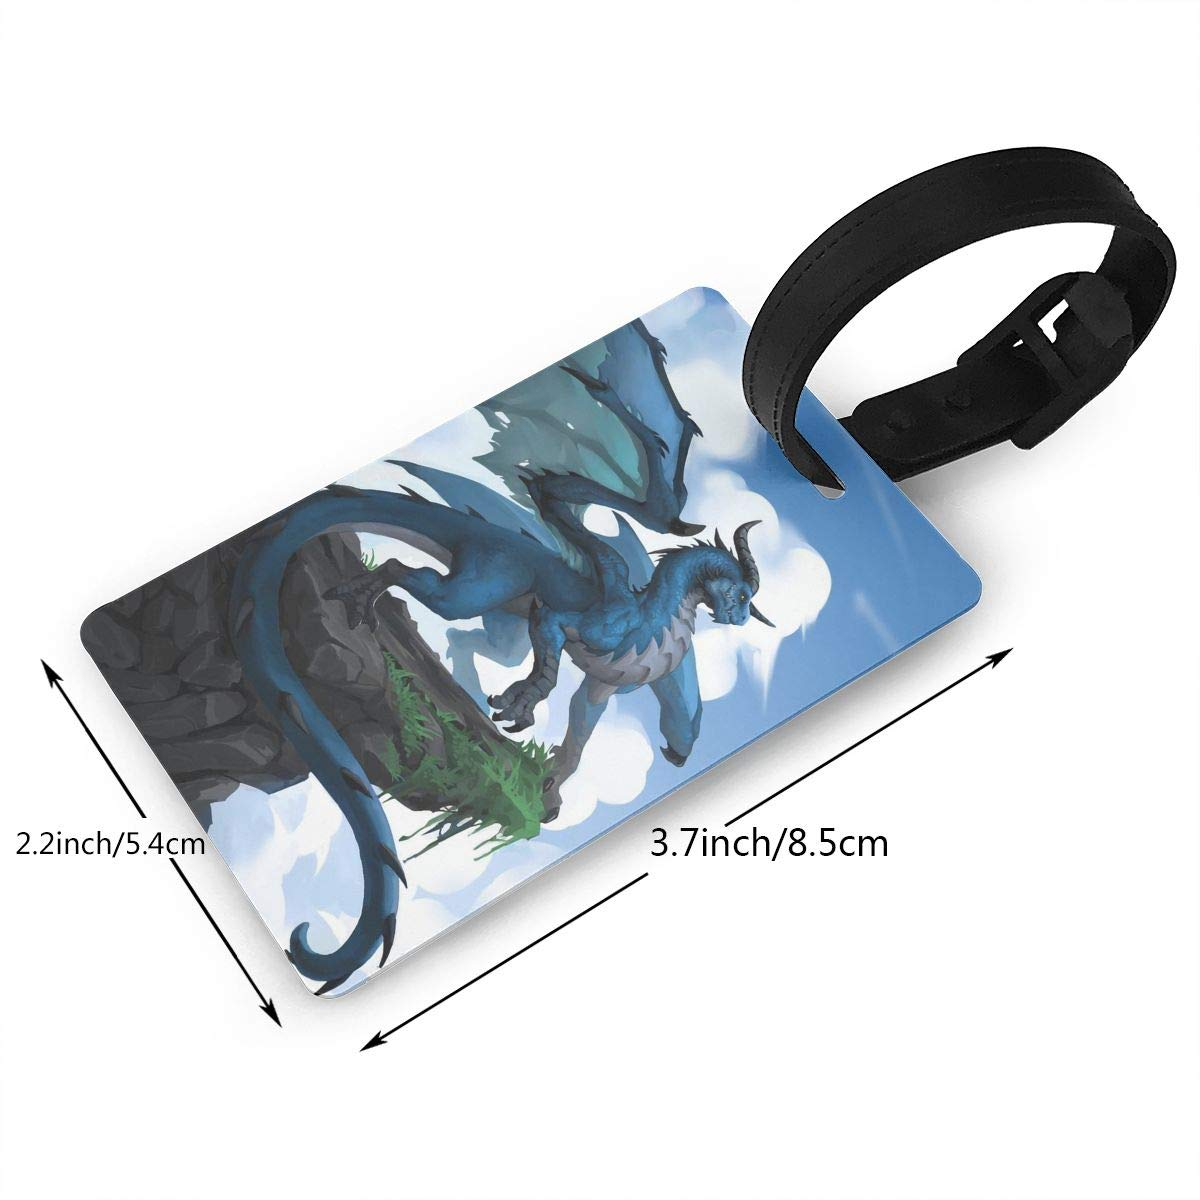 Dragon Pattern Handbag Tag For Travel Tags Accessories 2 Pack Luggage Tags